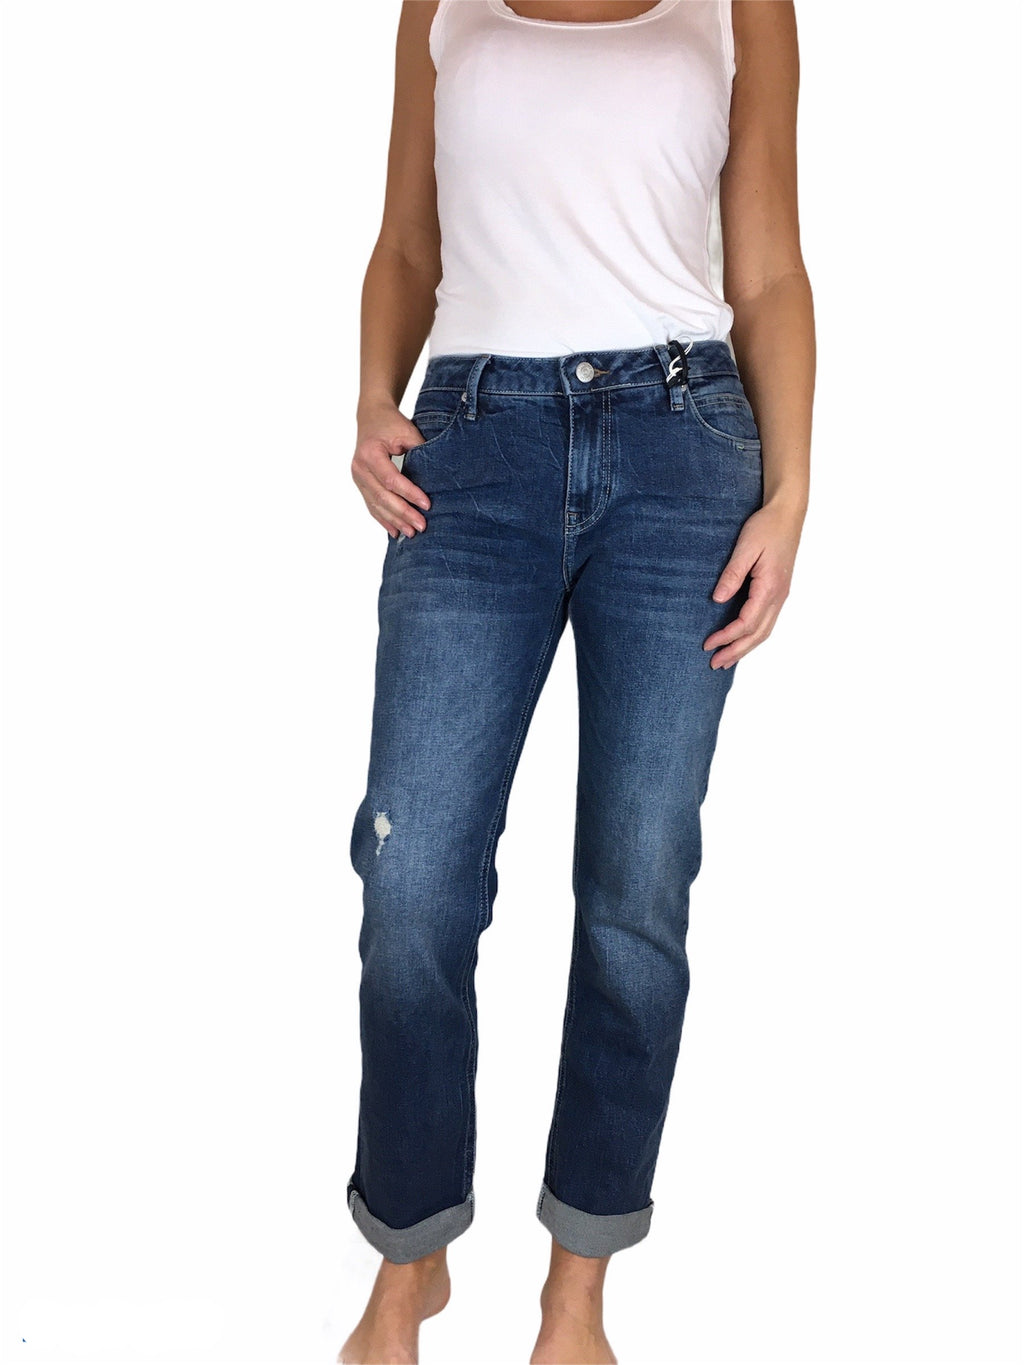 Boyfriend Stretchjeans  OLIVIA in lockerer Passform von BluefireCo.